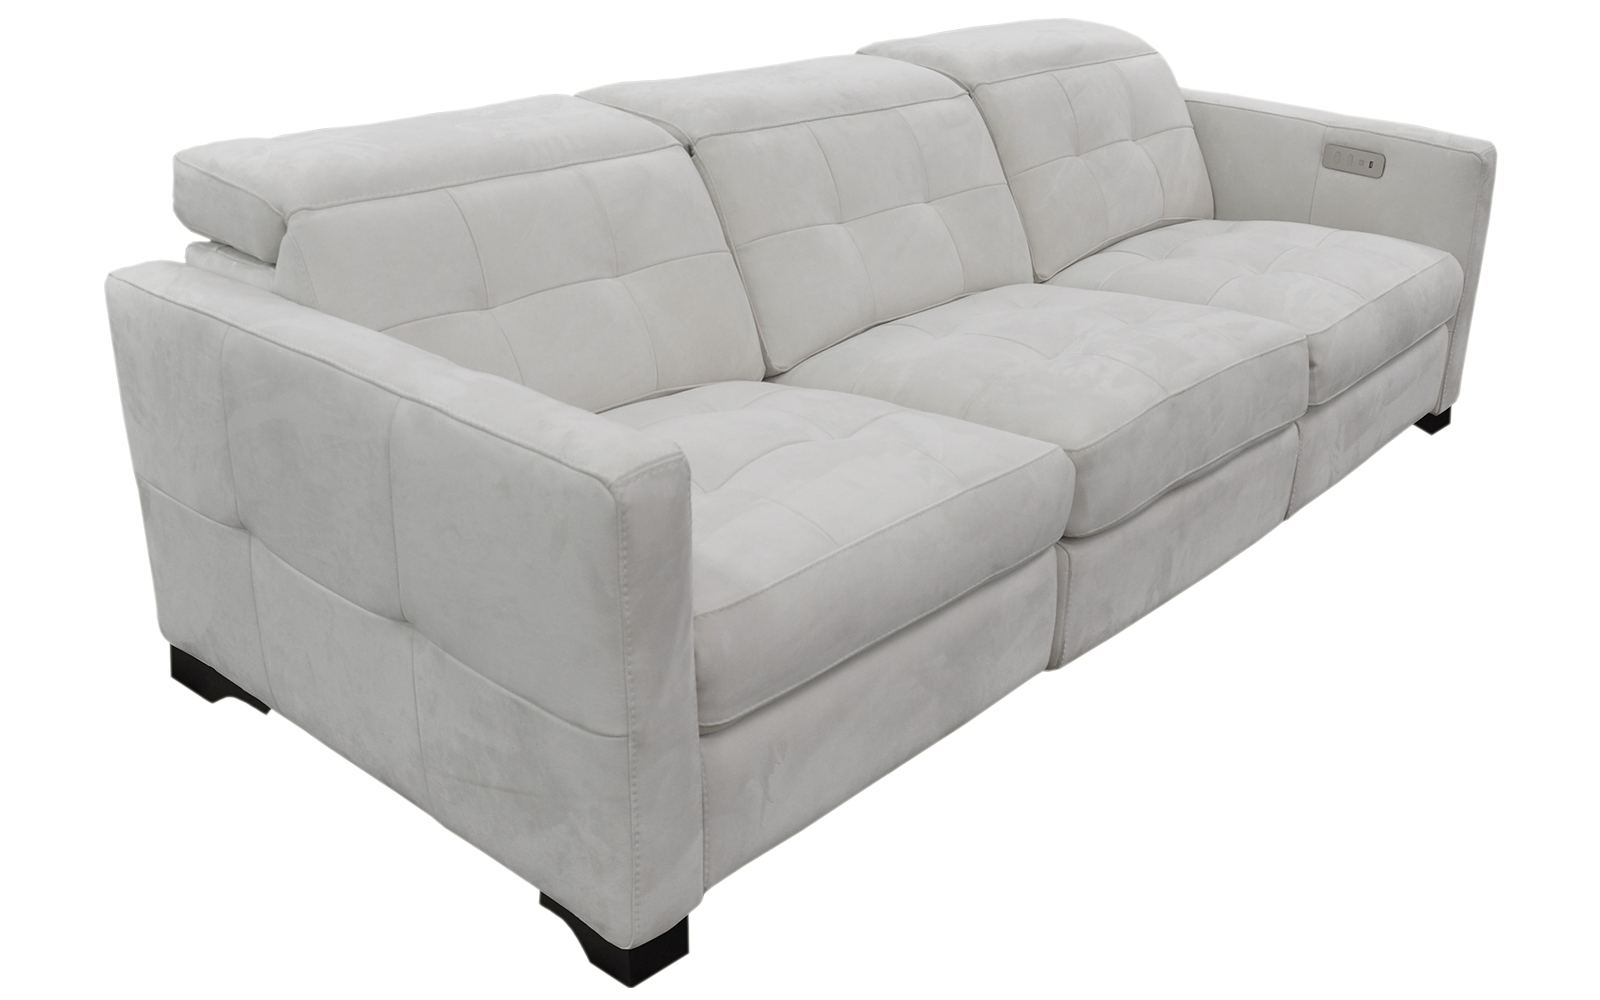 Swell Bergamo Sardinia 24 28 32 Reclining Sectional Available Pabps2019 Chair Design Images Pabps2019Com